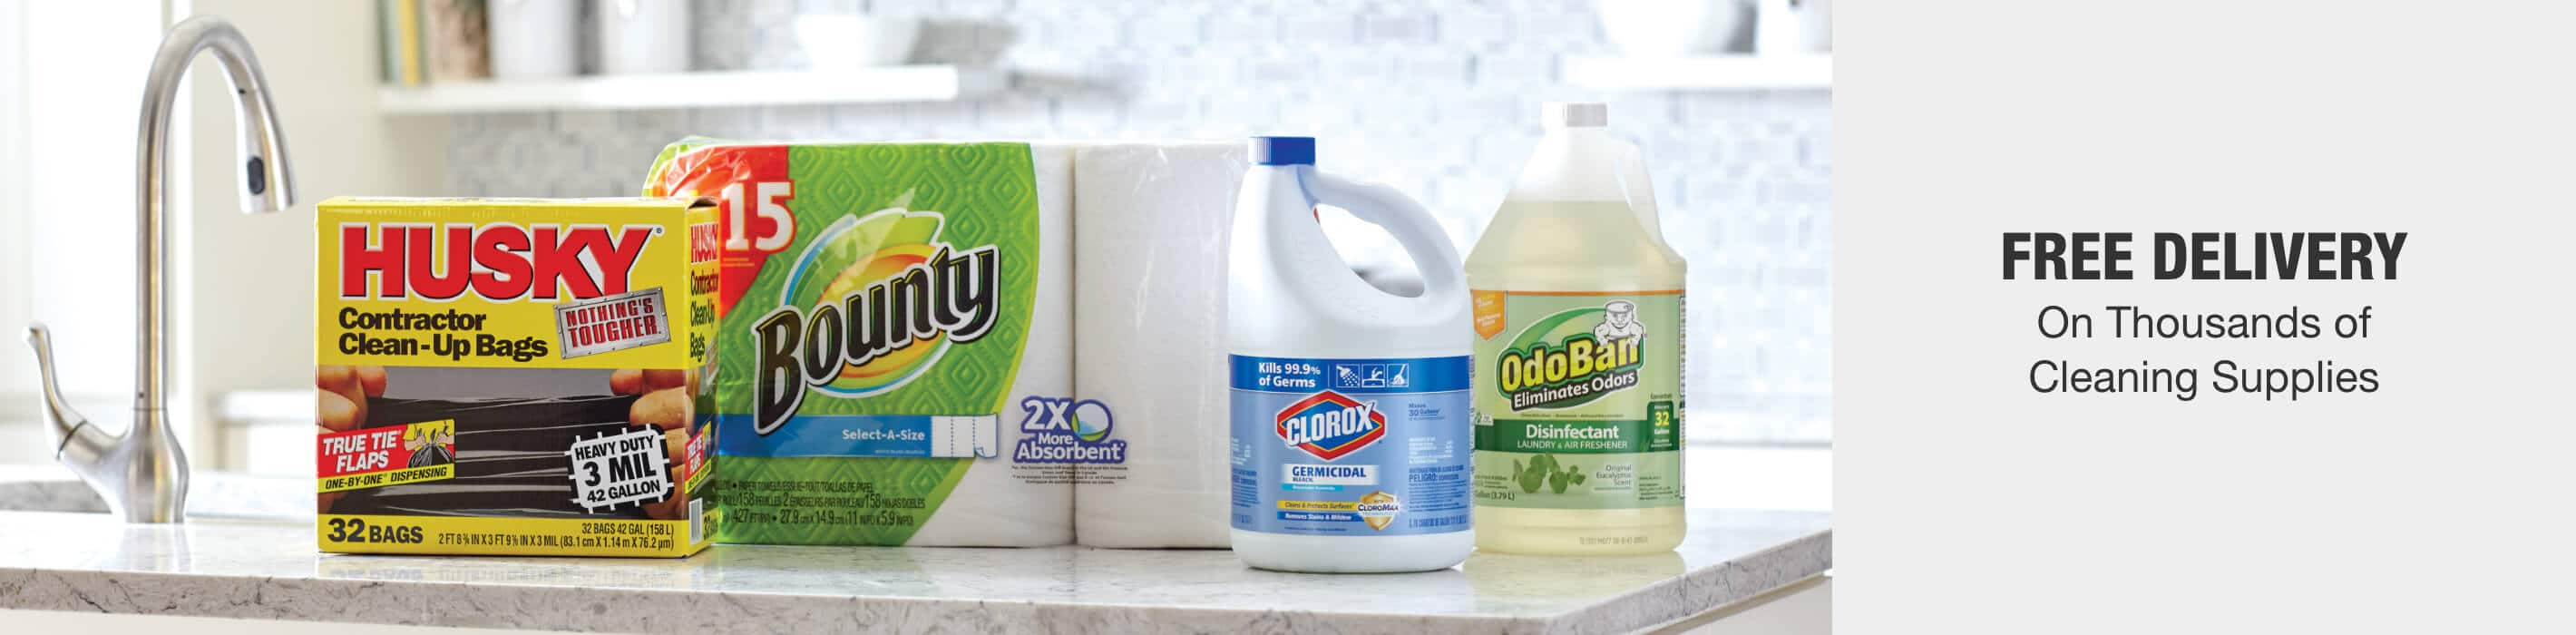 FREE DELIVERY On Thousands of Cleaning Supplies